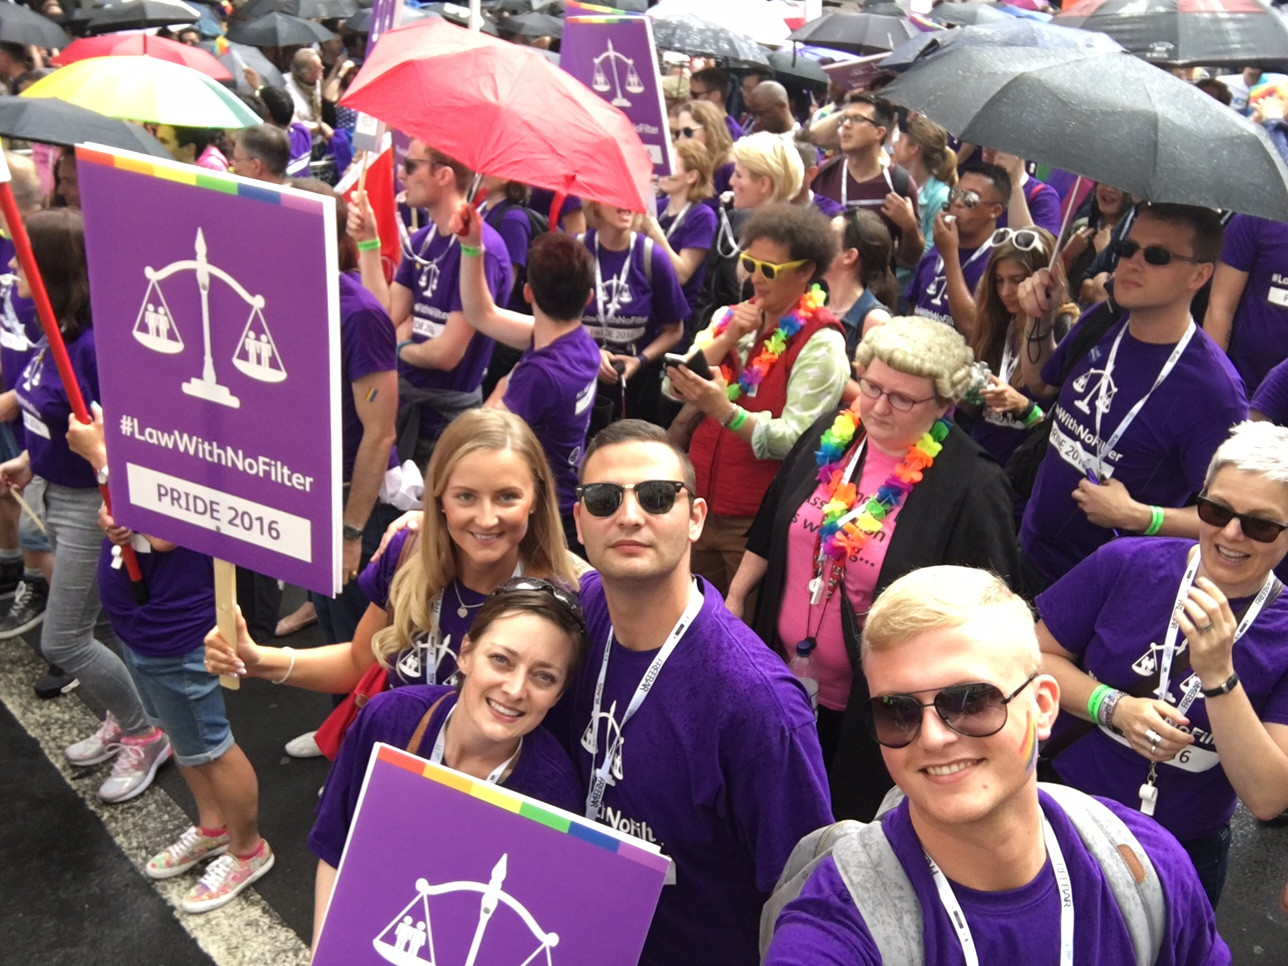 Team Giles Wilson at Legal Pride 2016